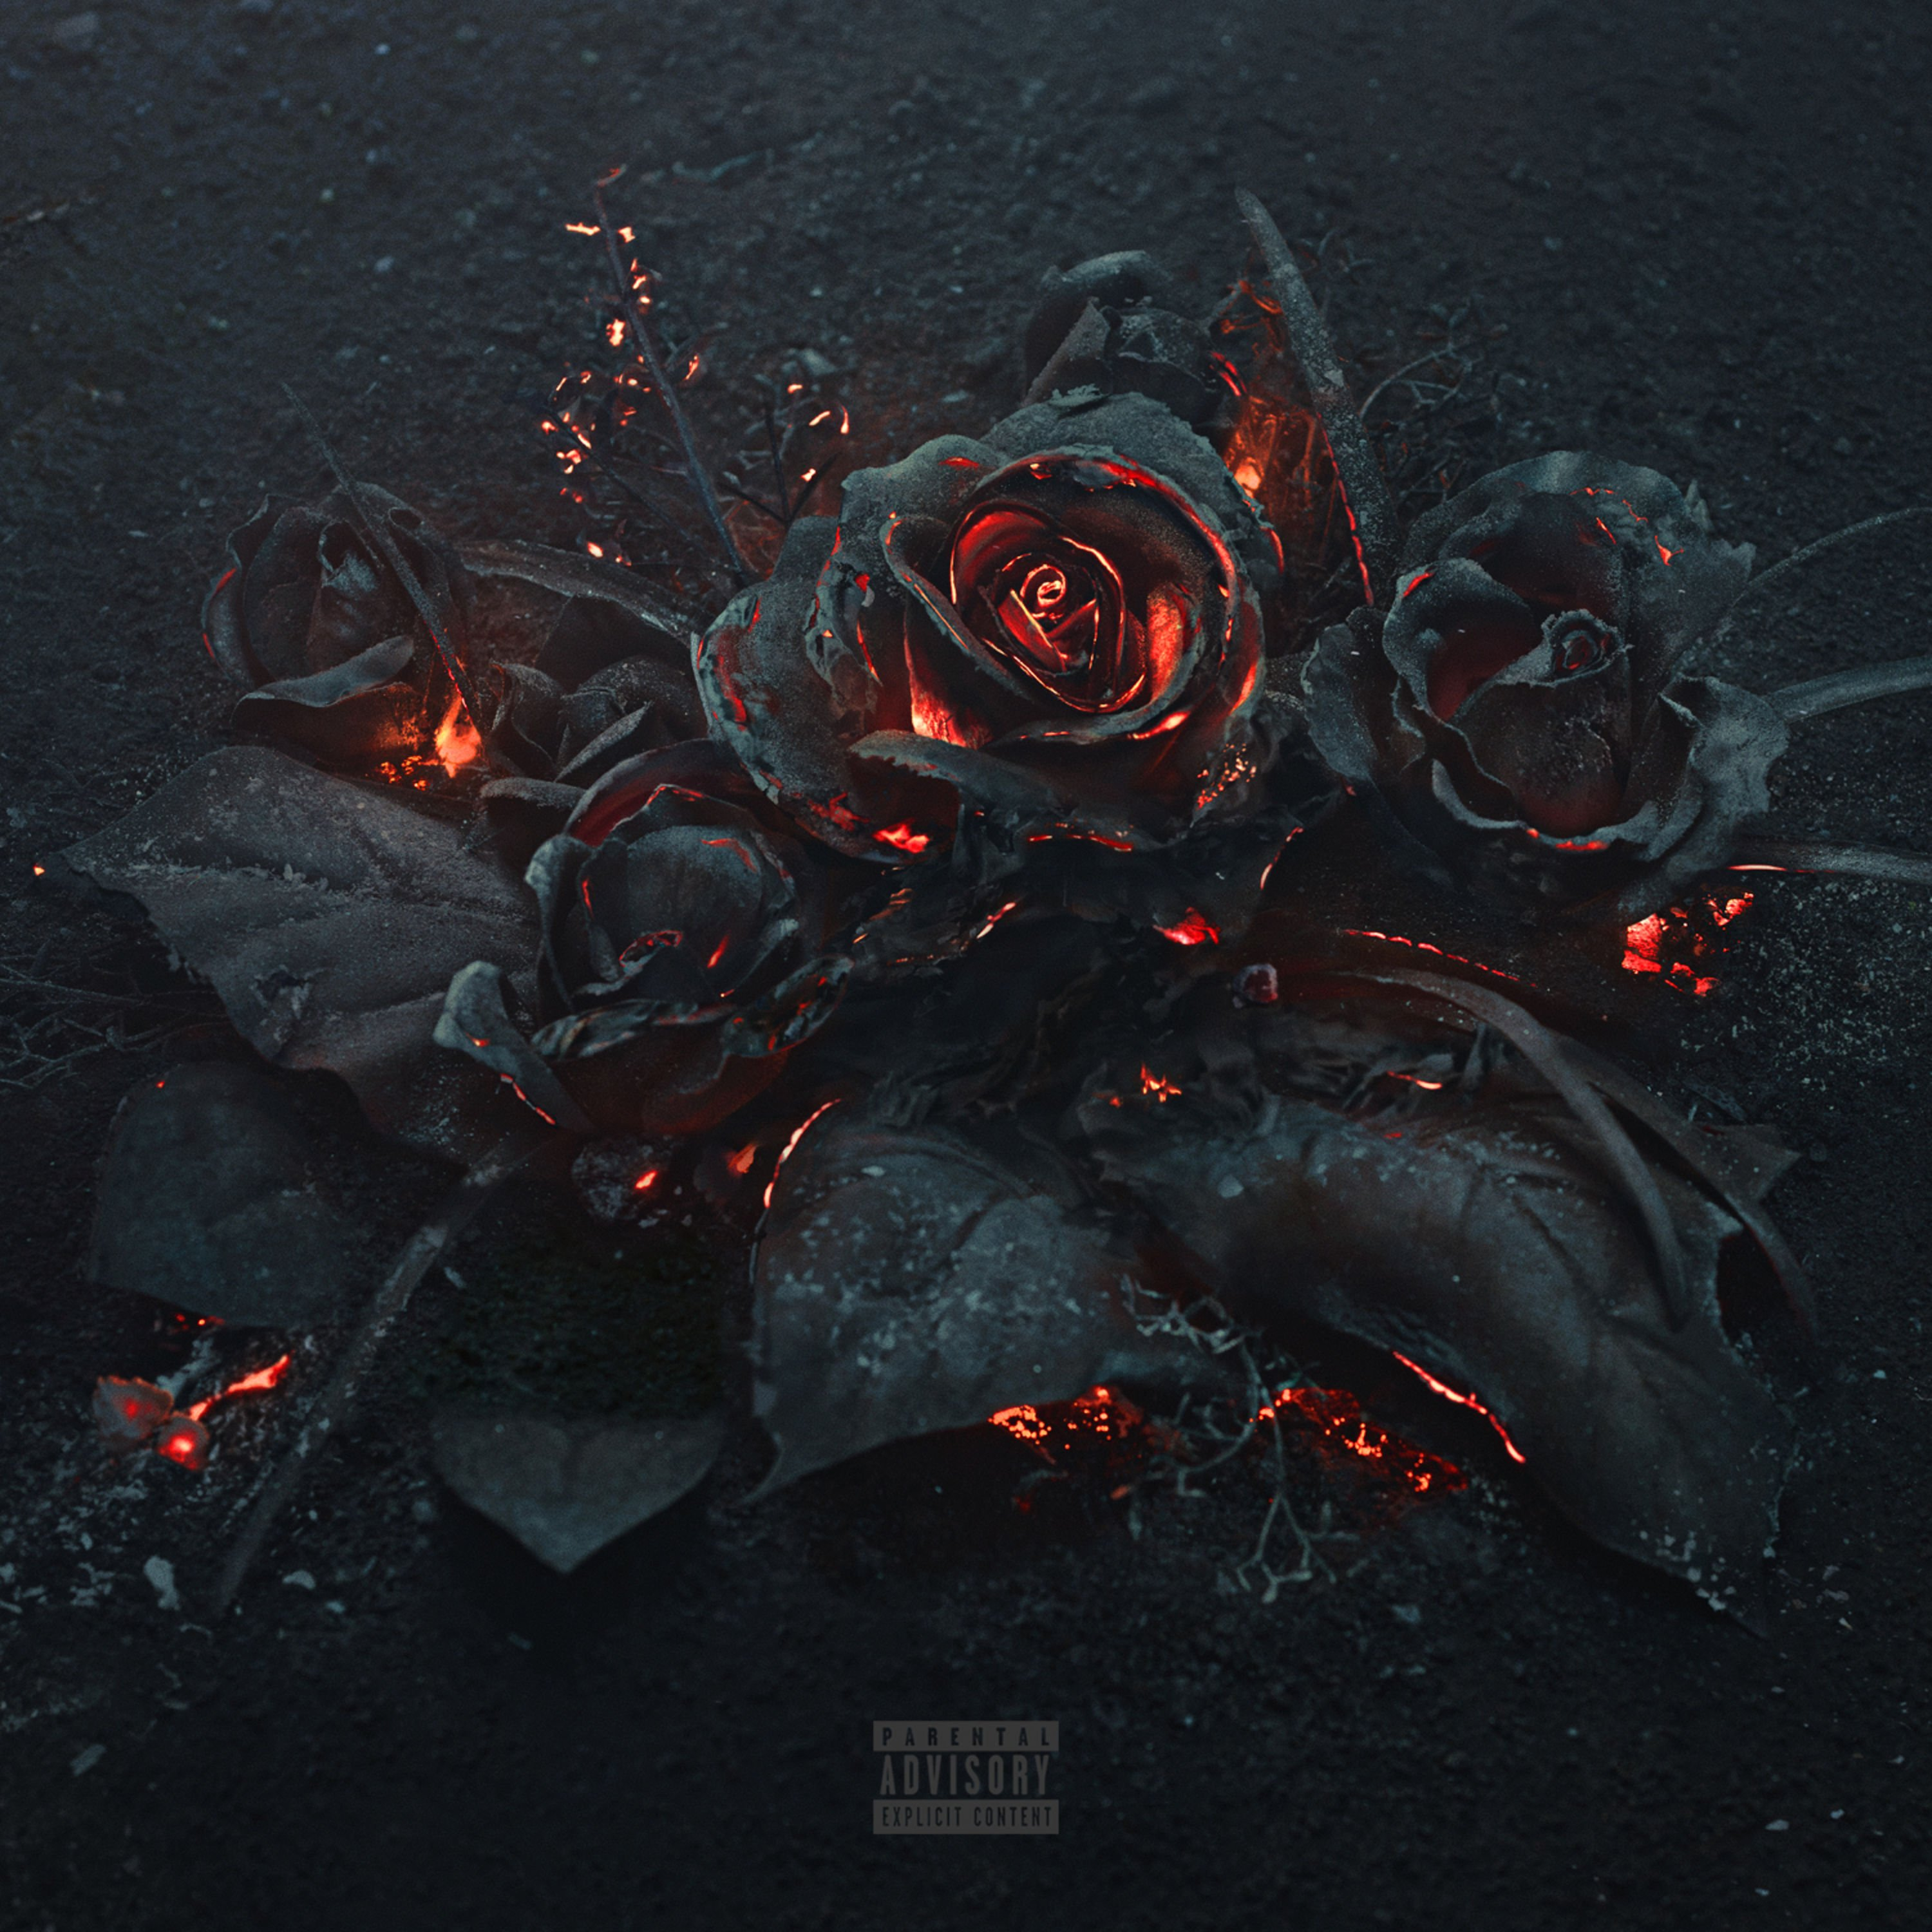 future-evol-album-cover